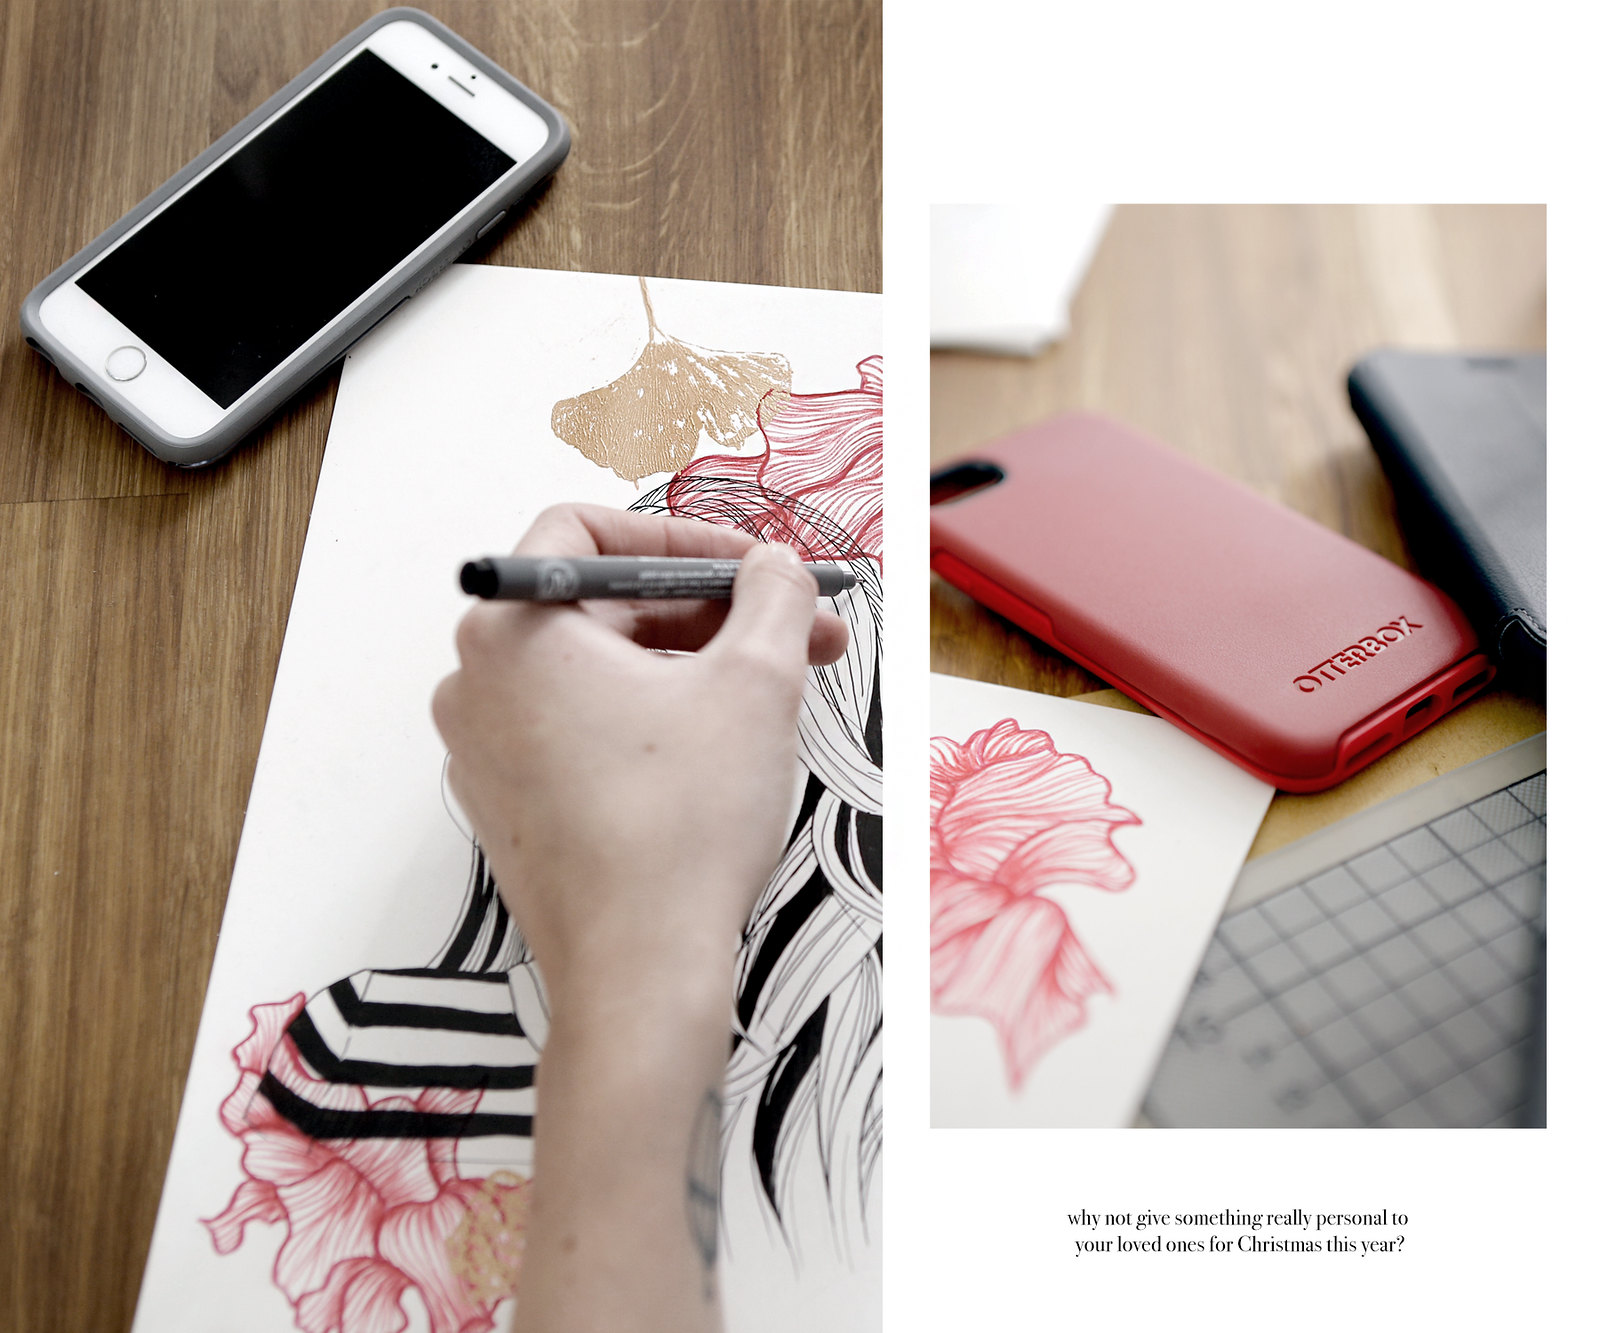 OtterBox #ChristmasCovered collaboration mobile phone accessory drawing painting giving christmas gifts gift giftguide artist brunette parisienne chic minimal scandi home cats & dogs lifestyleblog ricarda schernus modeblogger berlin düsseldorf 4